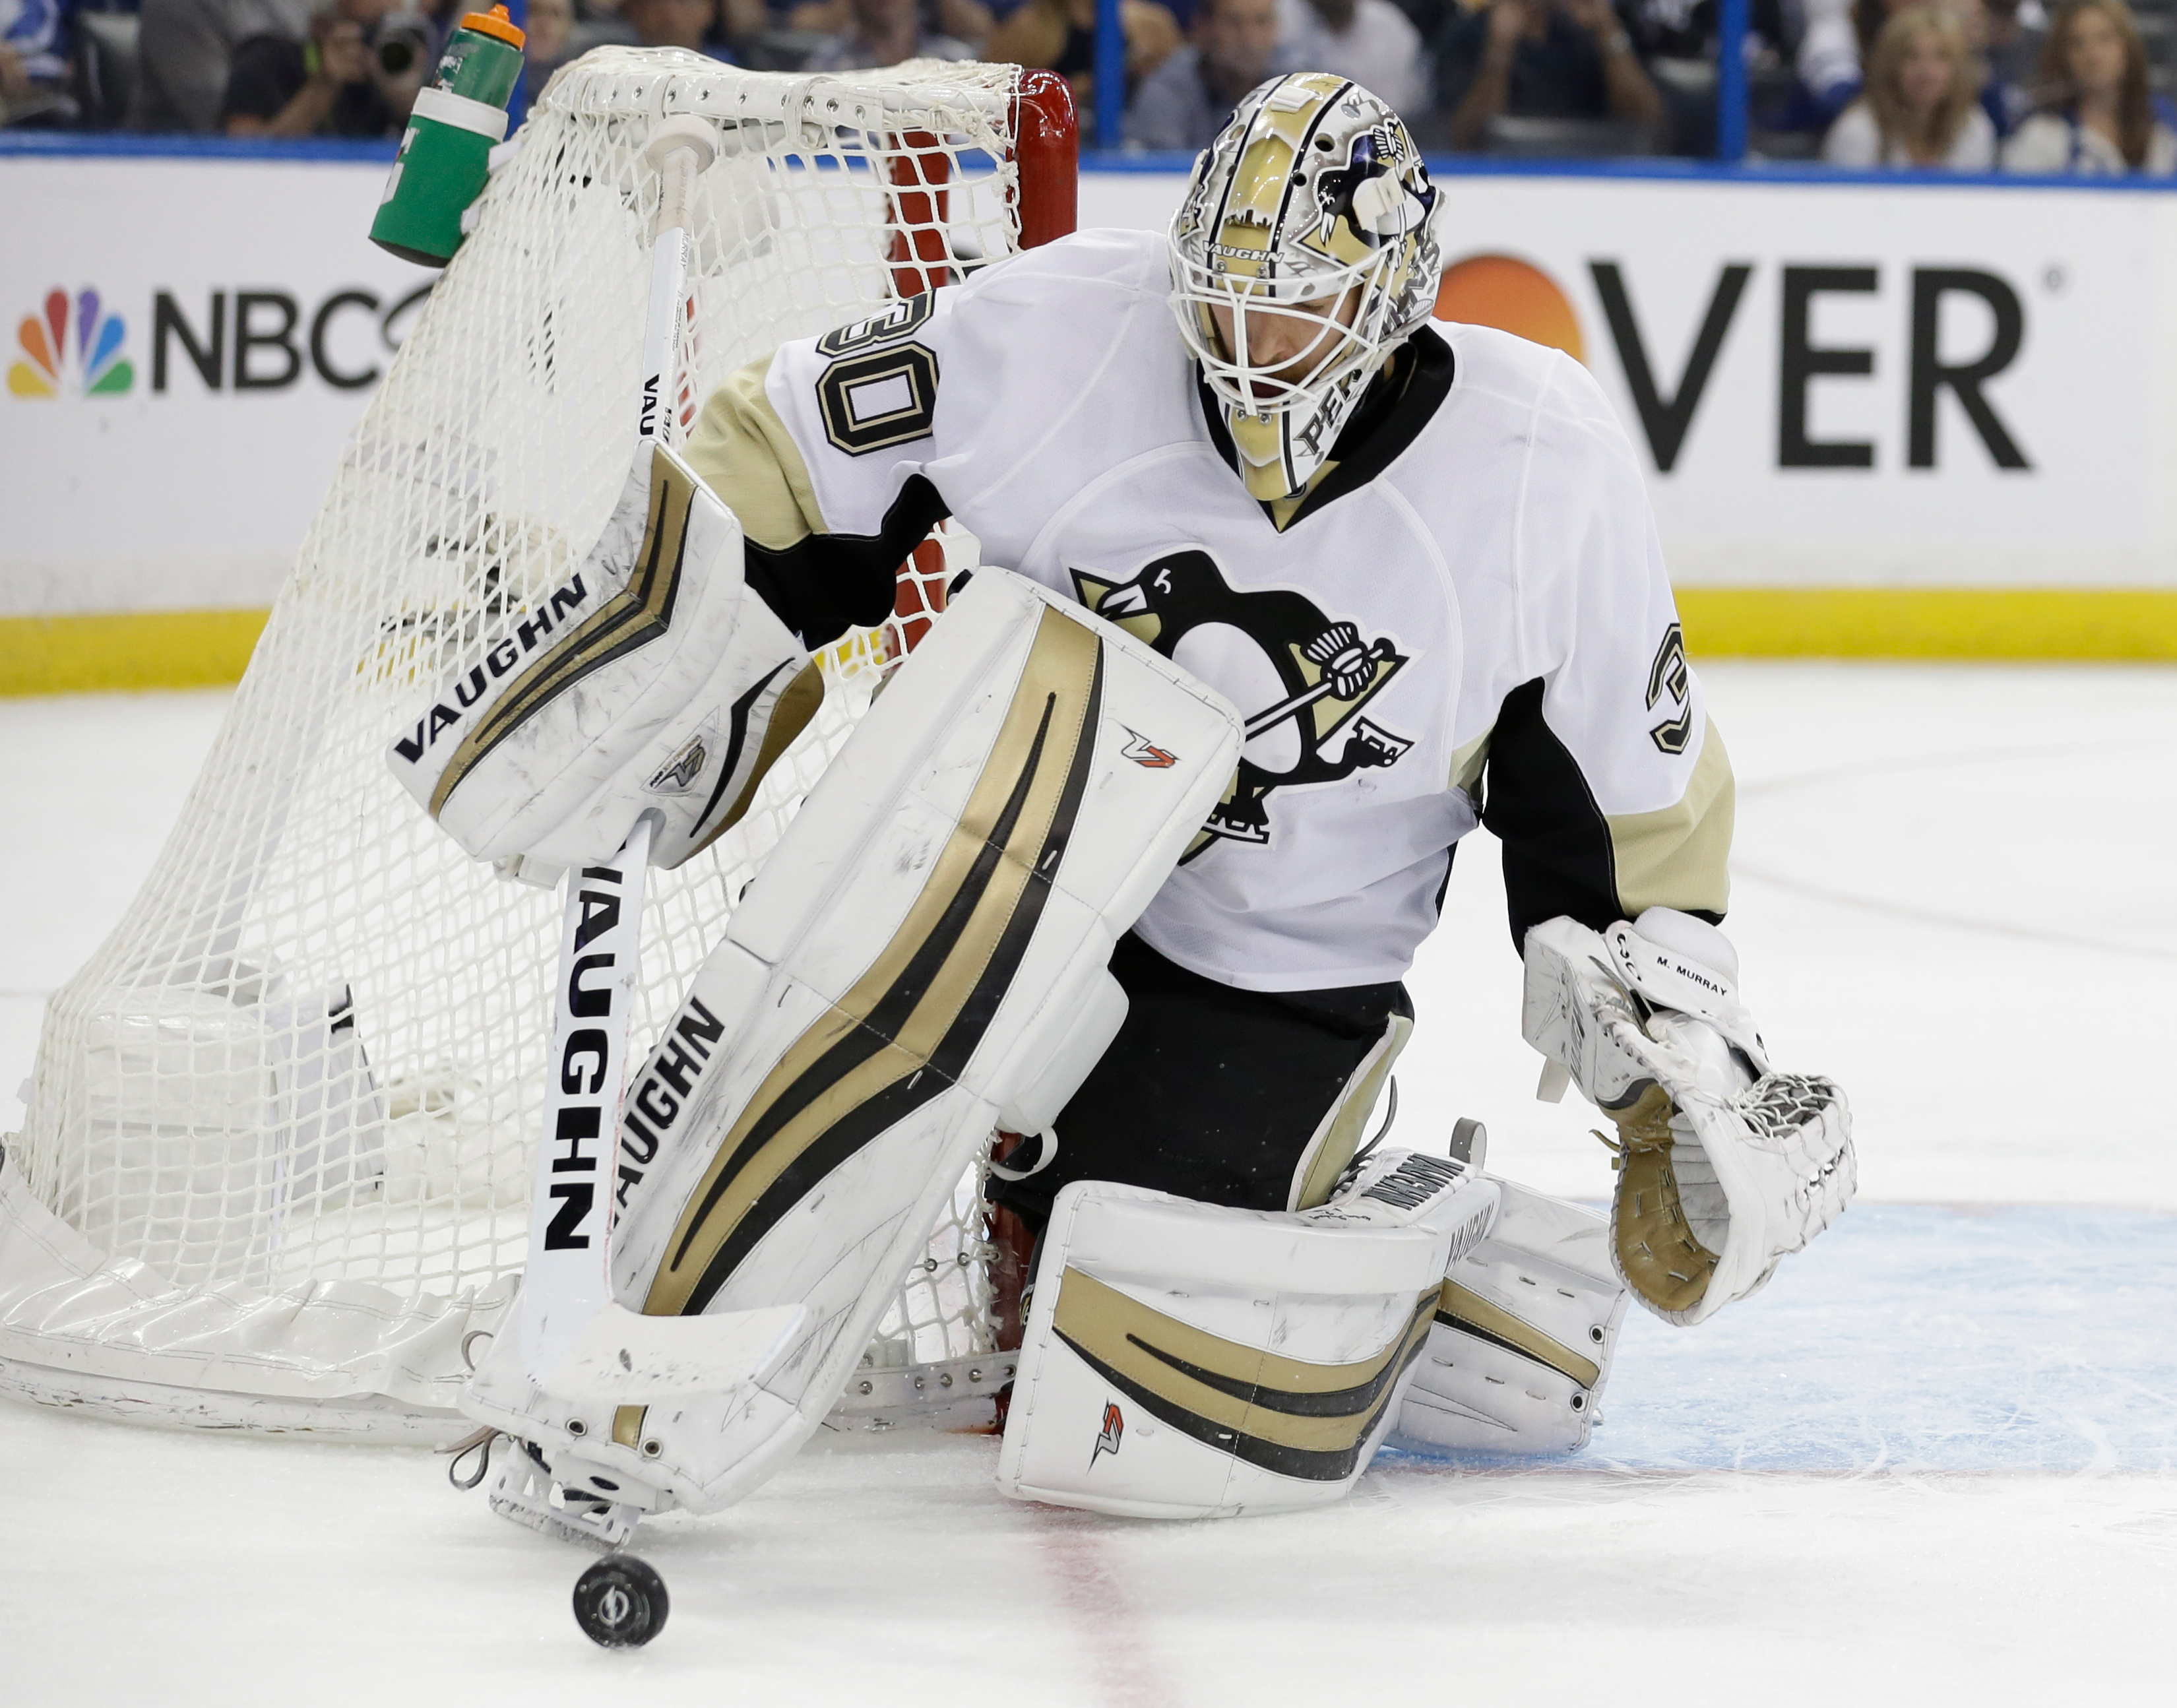 Pittsburgh Penguins goalie Matt Murray blocks a shot by the Tampa Bay Lightning during the second period of Game 4 of the NHL hockey Stanley Cup Eastern Conference finals Friday, May 20, 2016, in Tampa, Fla. (AP Photo/Chris O'Meara)